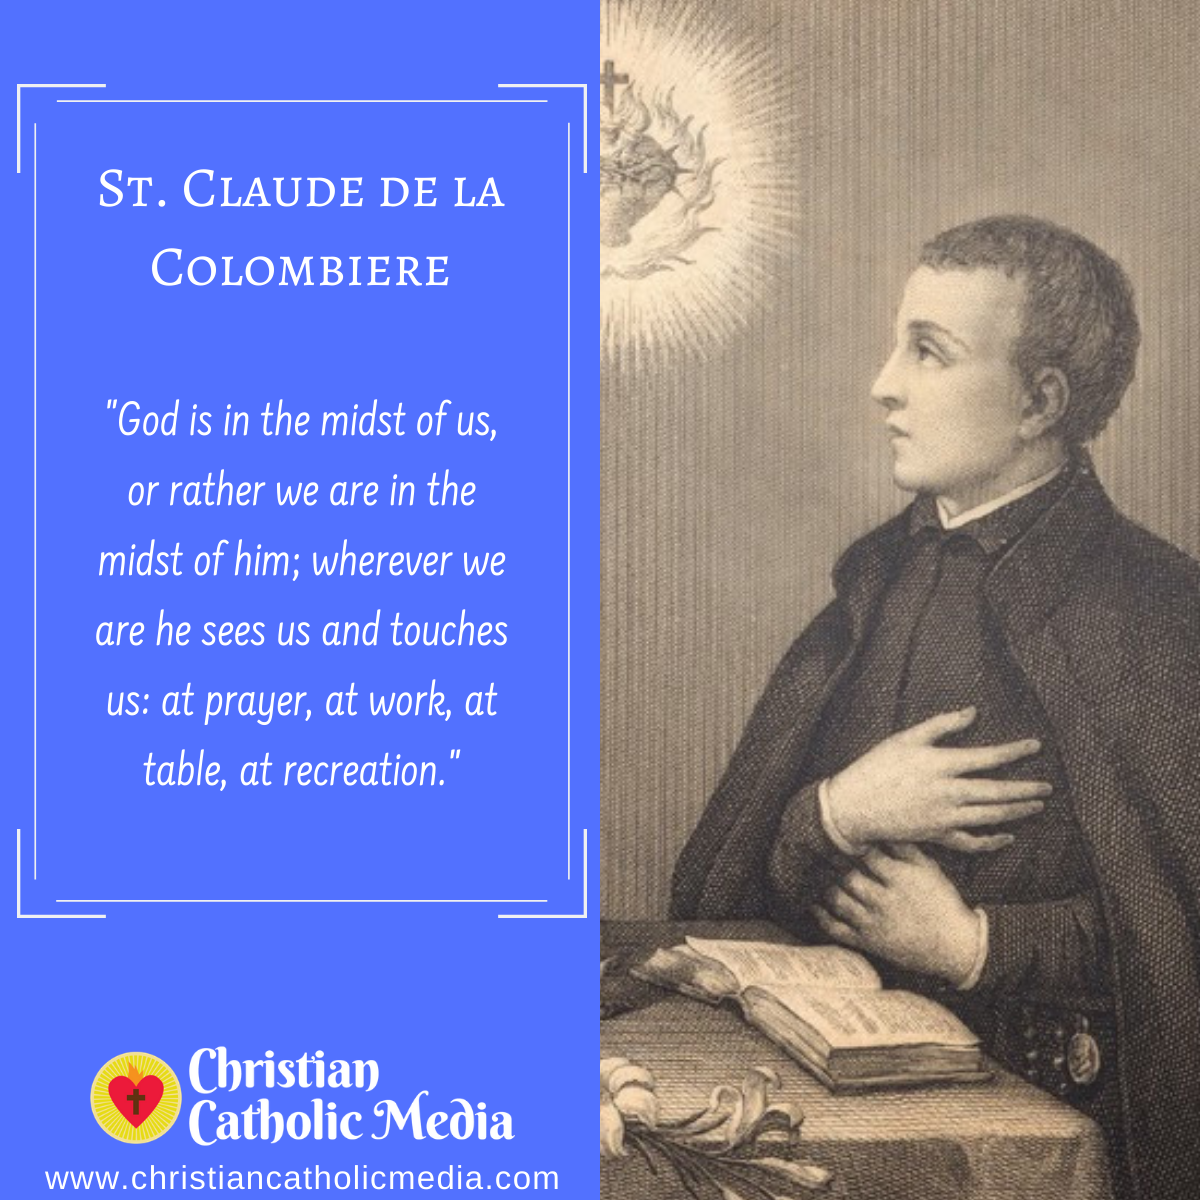 St. Claude de la Colombiere - Saturday February 15, 2020